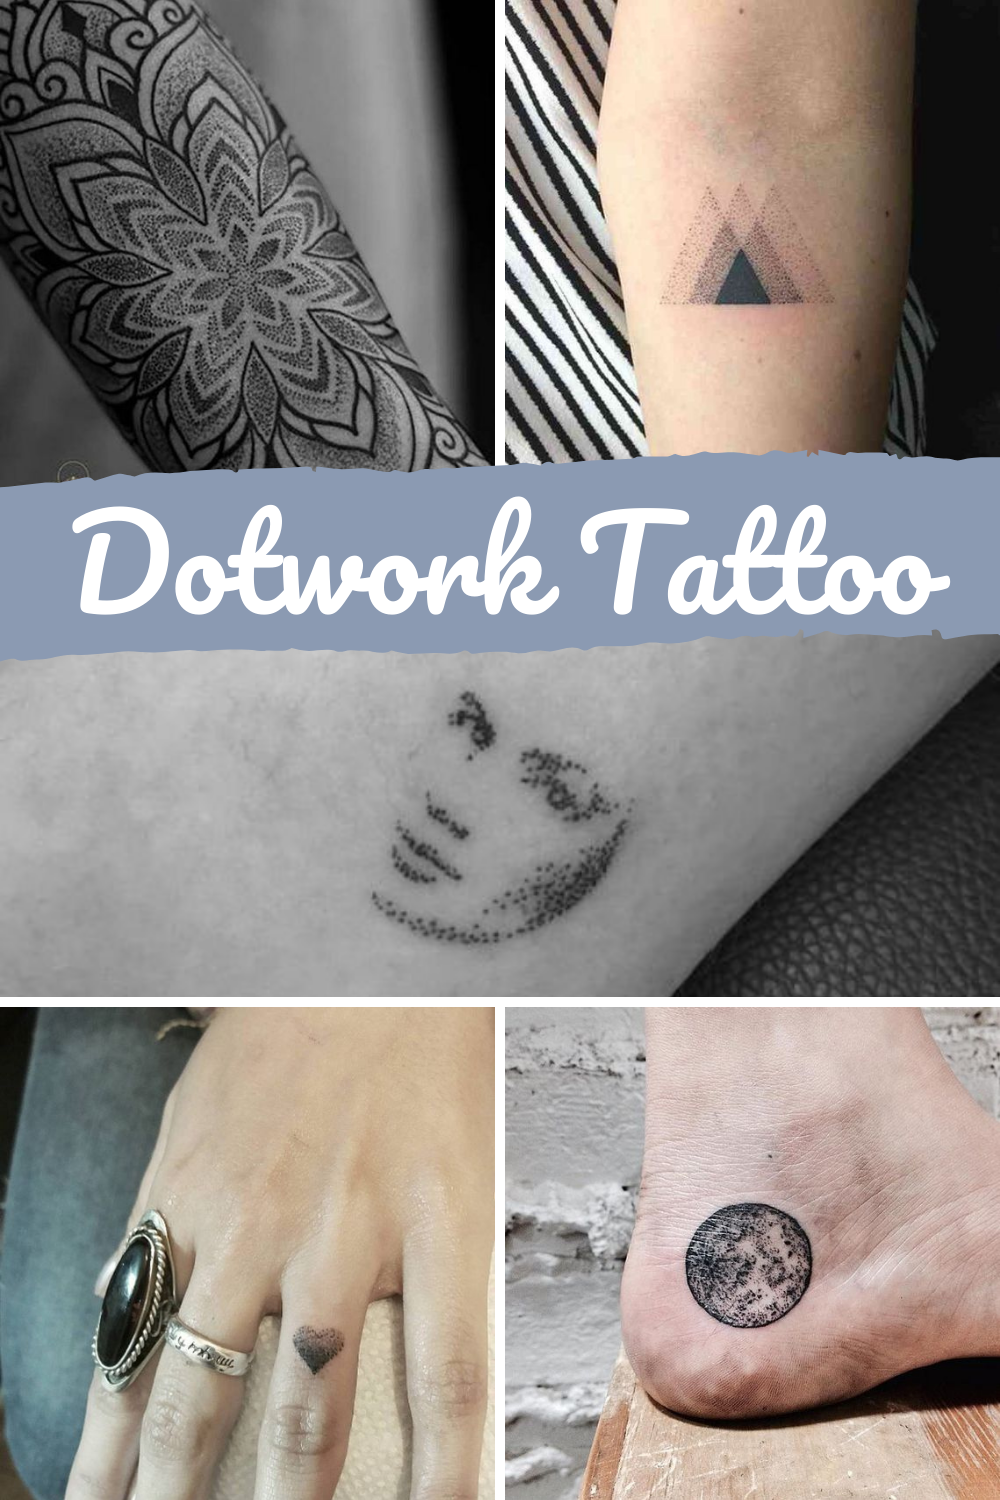 Dotwork Tattoos Ideas